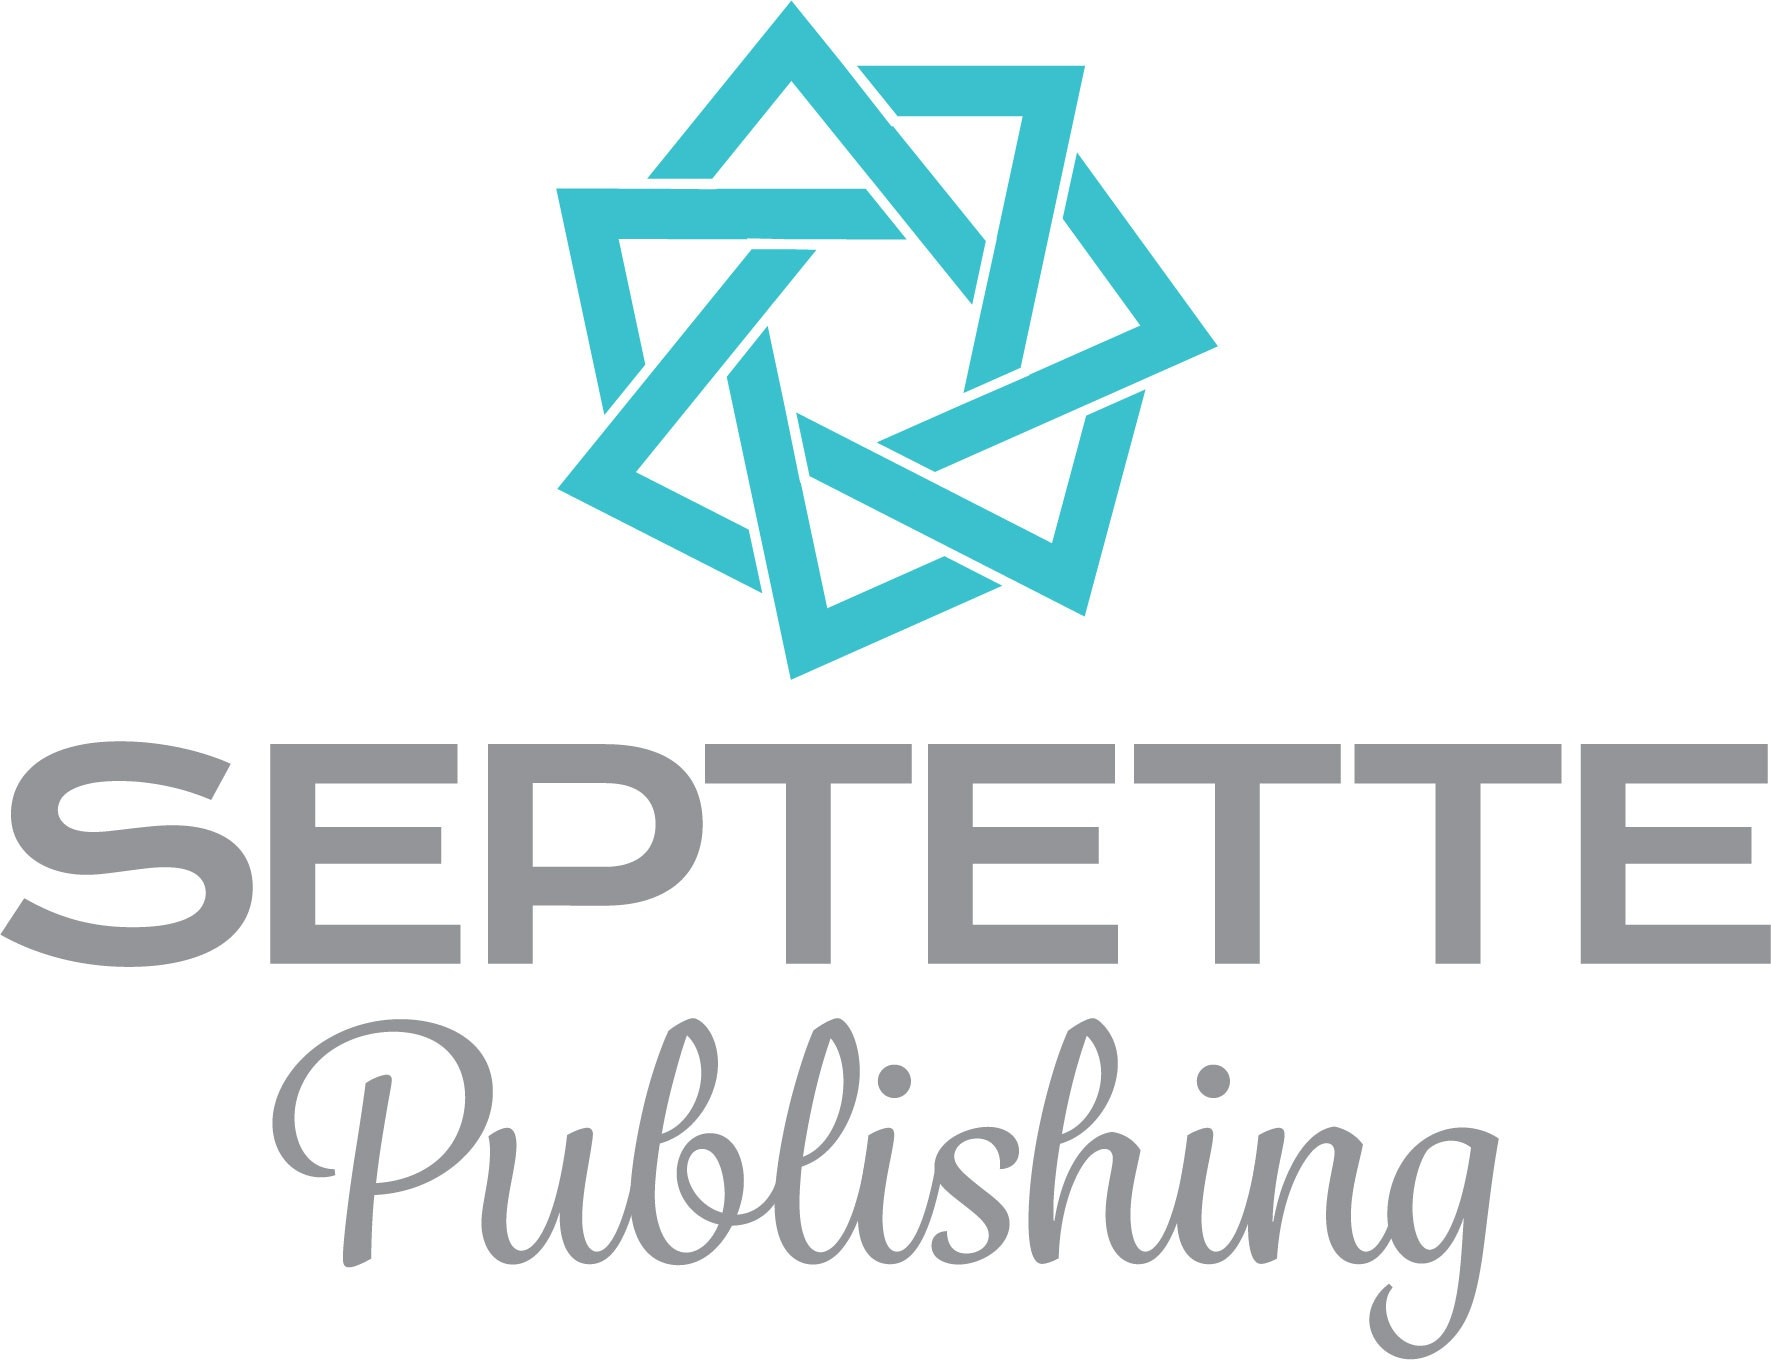 Septette Publishing needs a logo for website launch